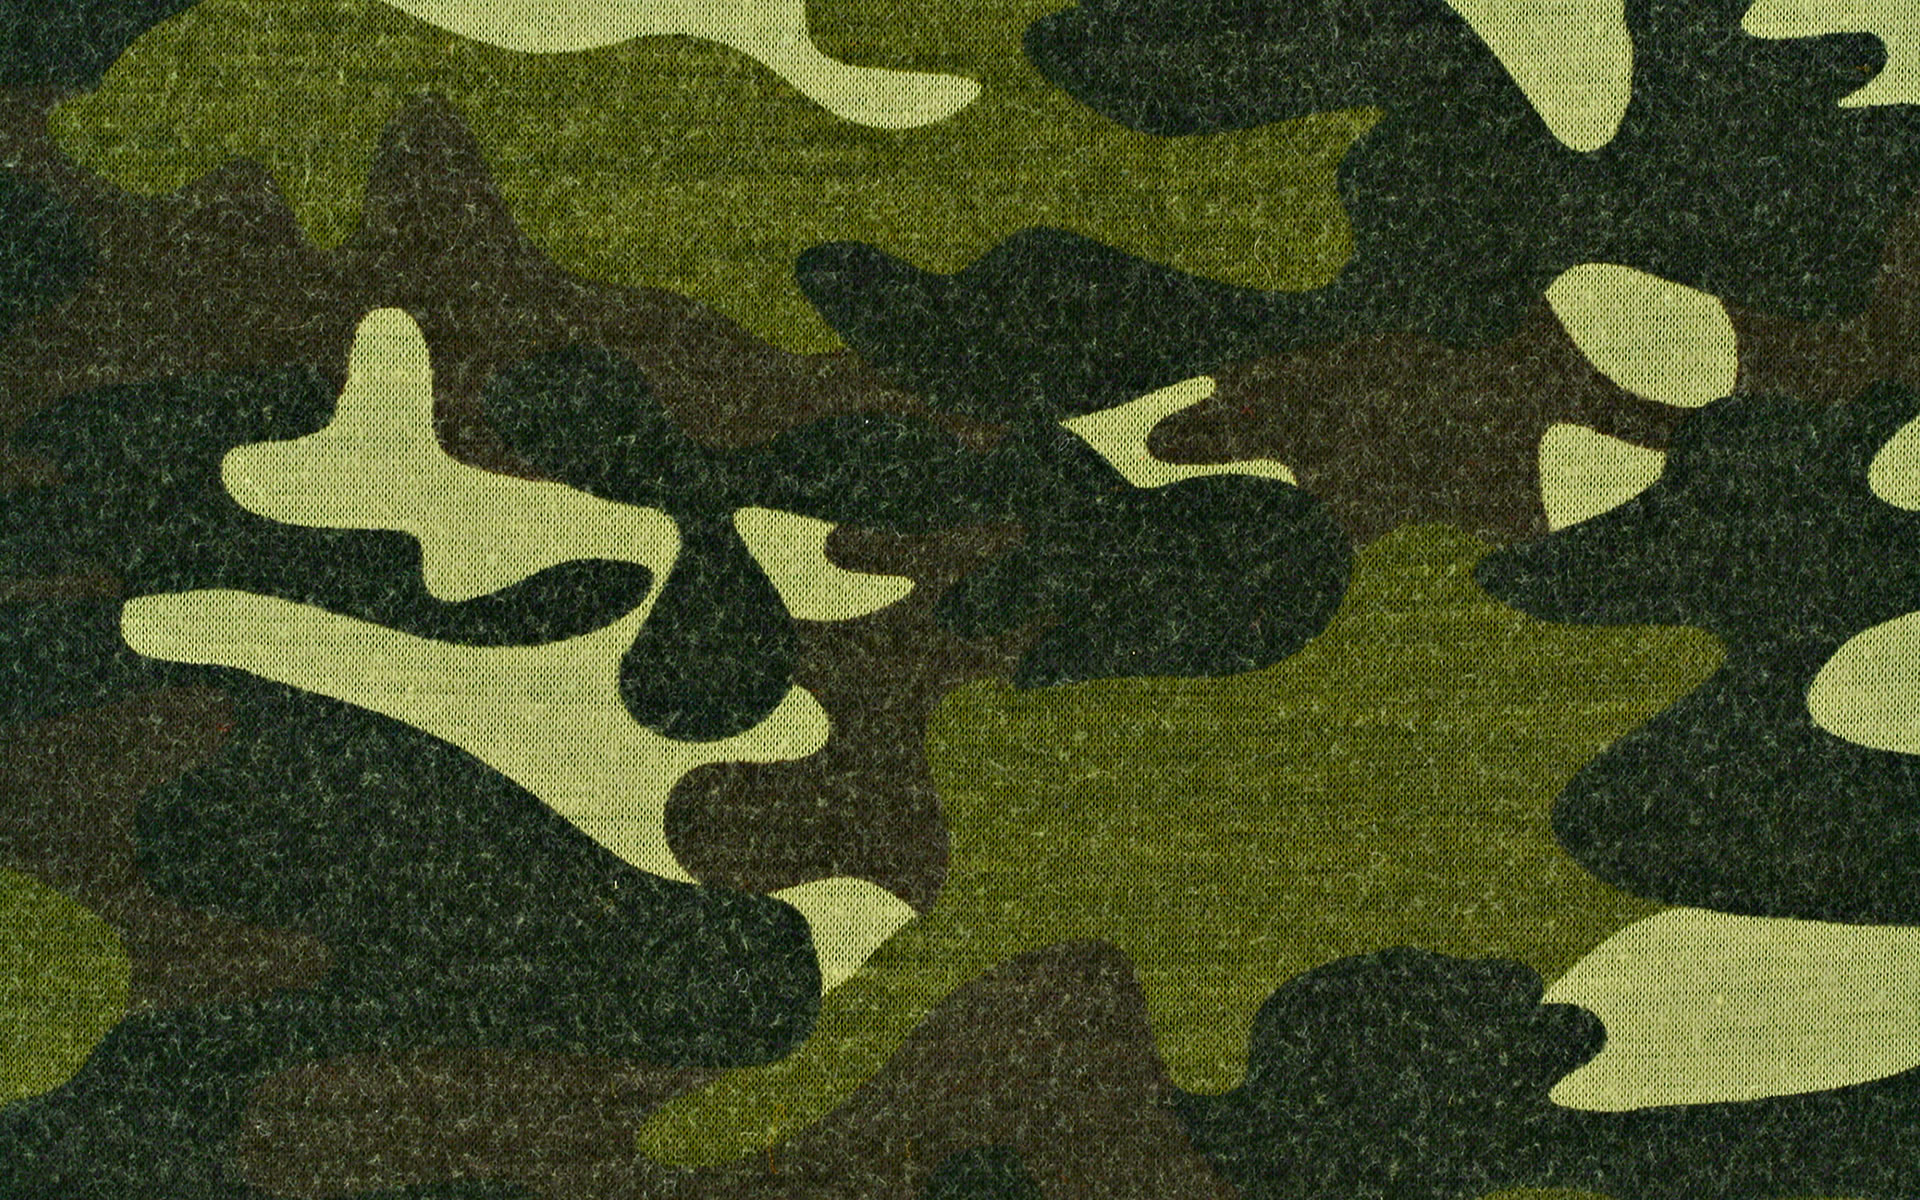 Textura Camuflaje Wallpapers : textura camuflaje from wallpapers.org.es size 1920 x 1200 jpeg 786kB